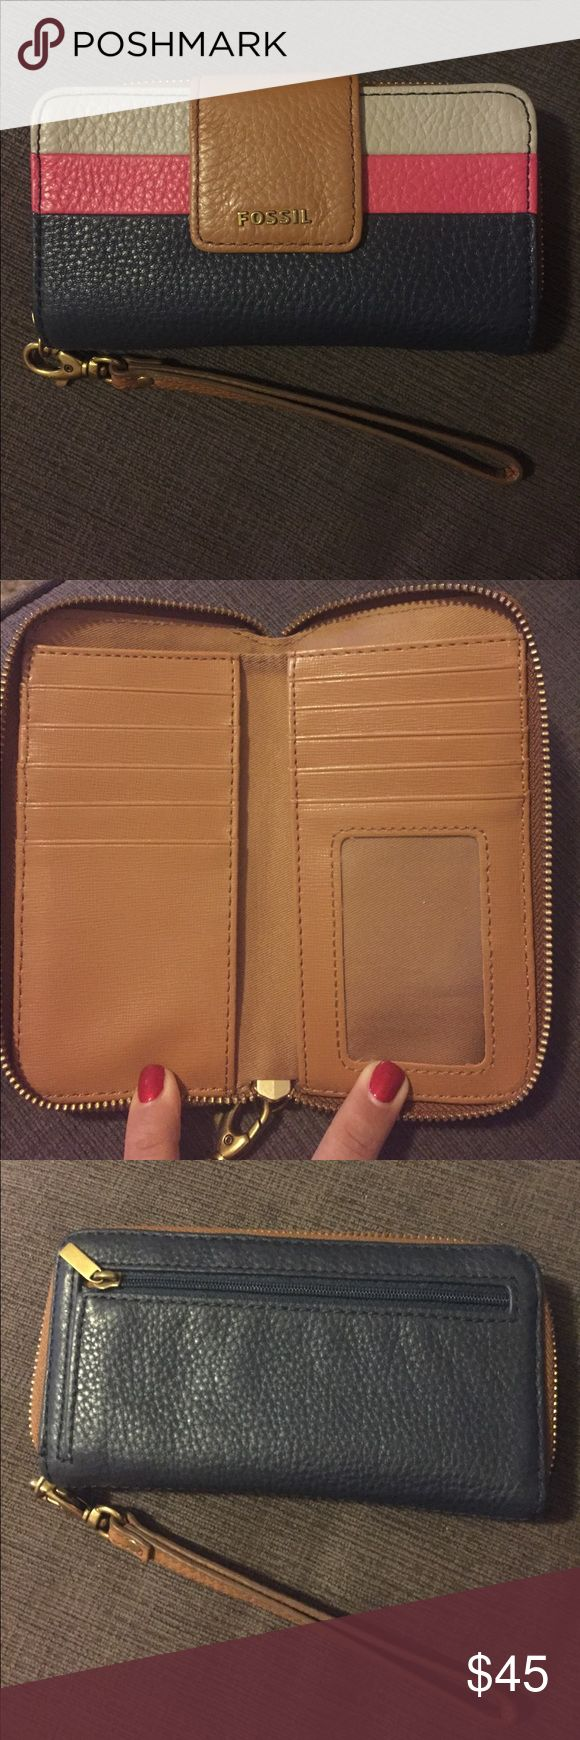 Fossil wallet Leather Fossil wallet with wrist strap, zip closure, many slots for cards and pocket for cash inside, zip pocket for change outside, outside pocket with button closure tab for cell phone. Barely used, excellent condition. Fossil Bags Wallets